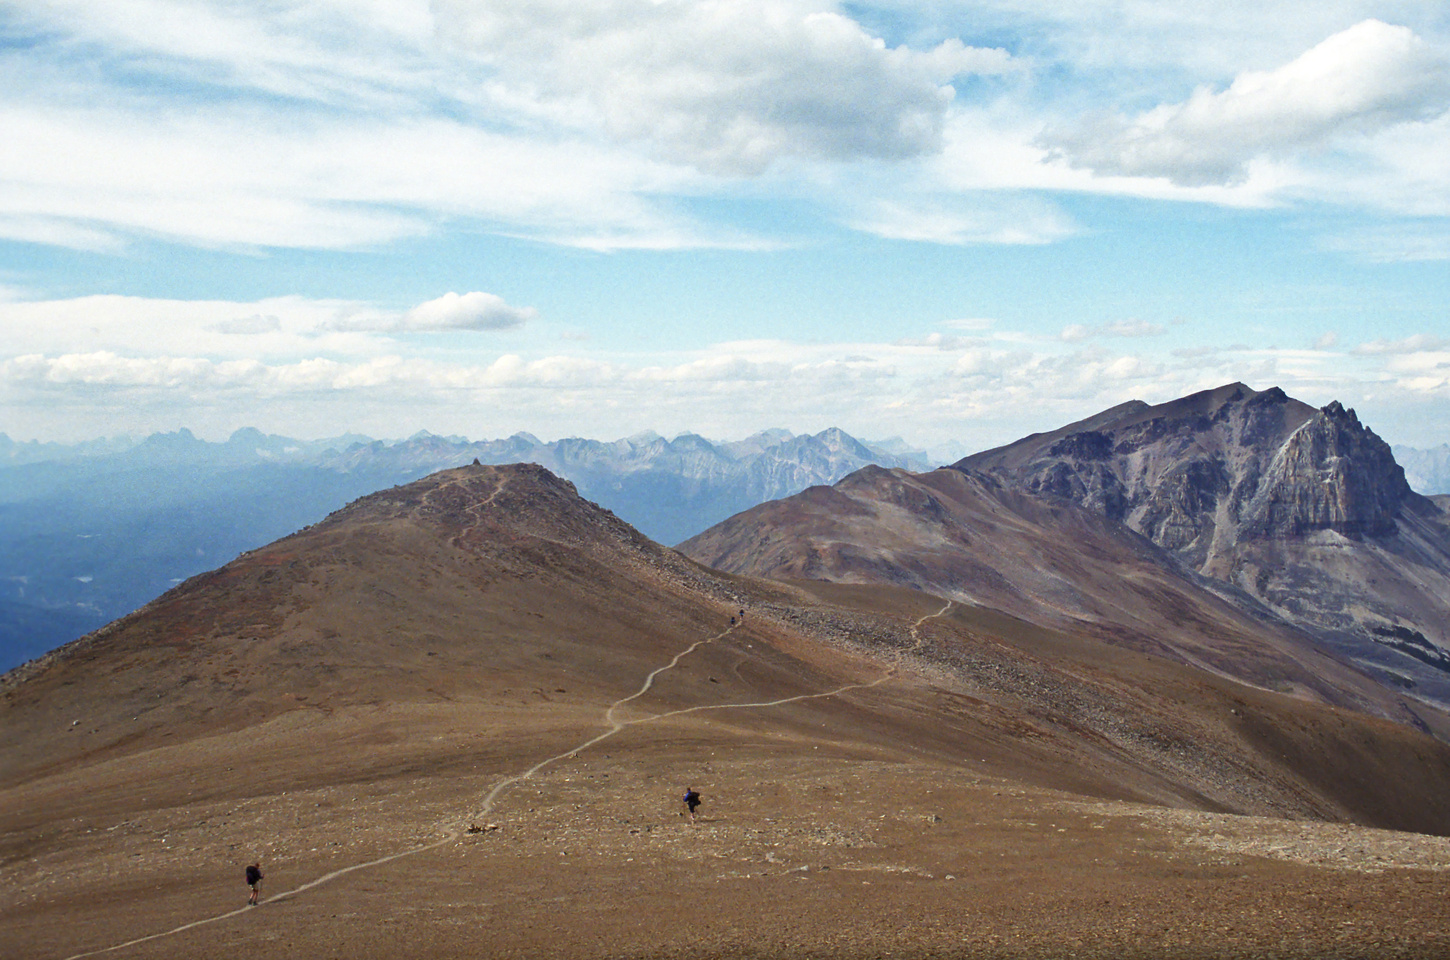 Looking ahead from near Amber Mountain's summit to Mount Tekarra at right. We will descend to the Tekarra campground out of the photo on the right.